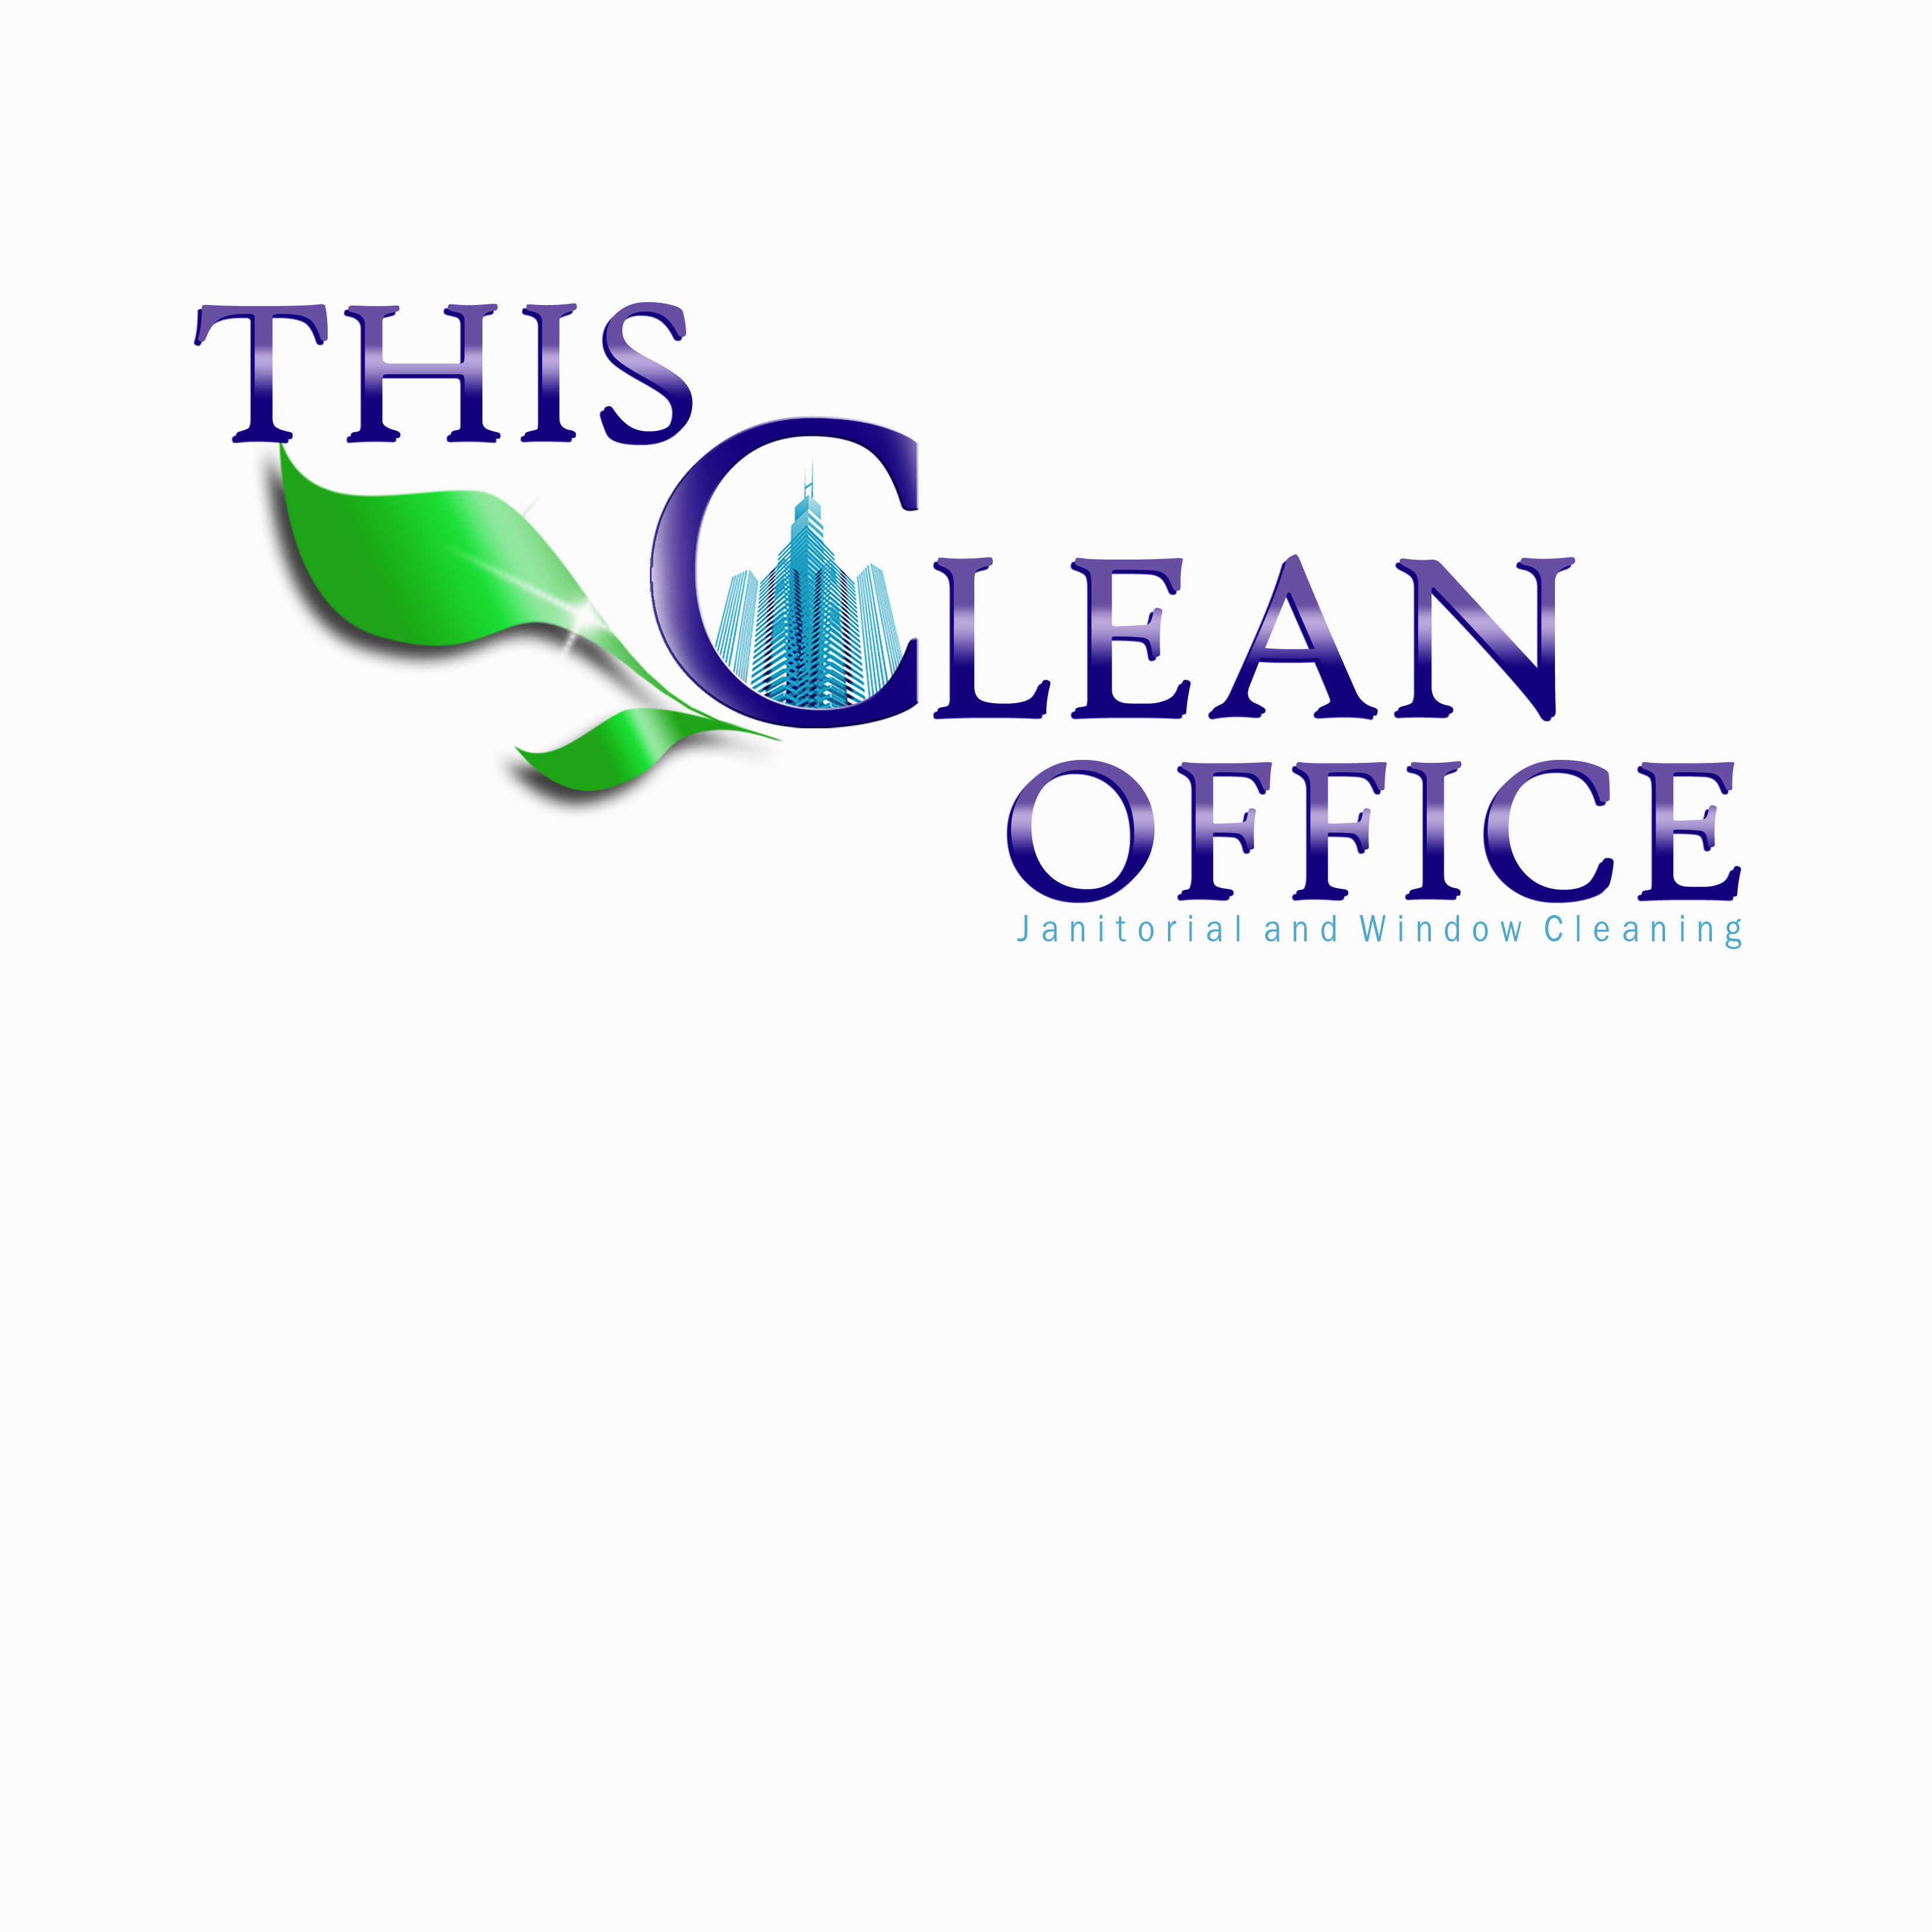 Logo Design by Allan Esclamado - Entry No. 74 in the Logo Design Contest Professional and Unforgettable Logo Design for This Clean Office.